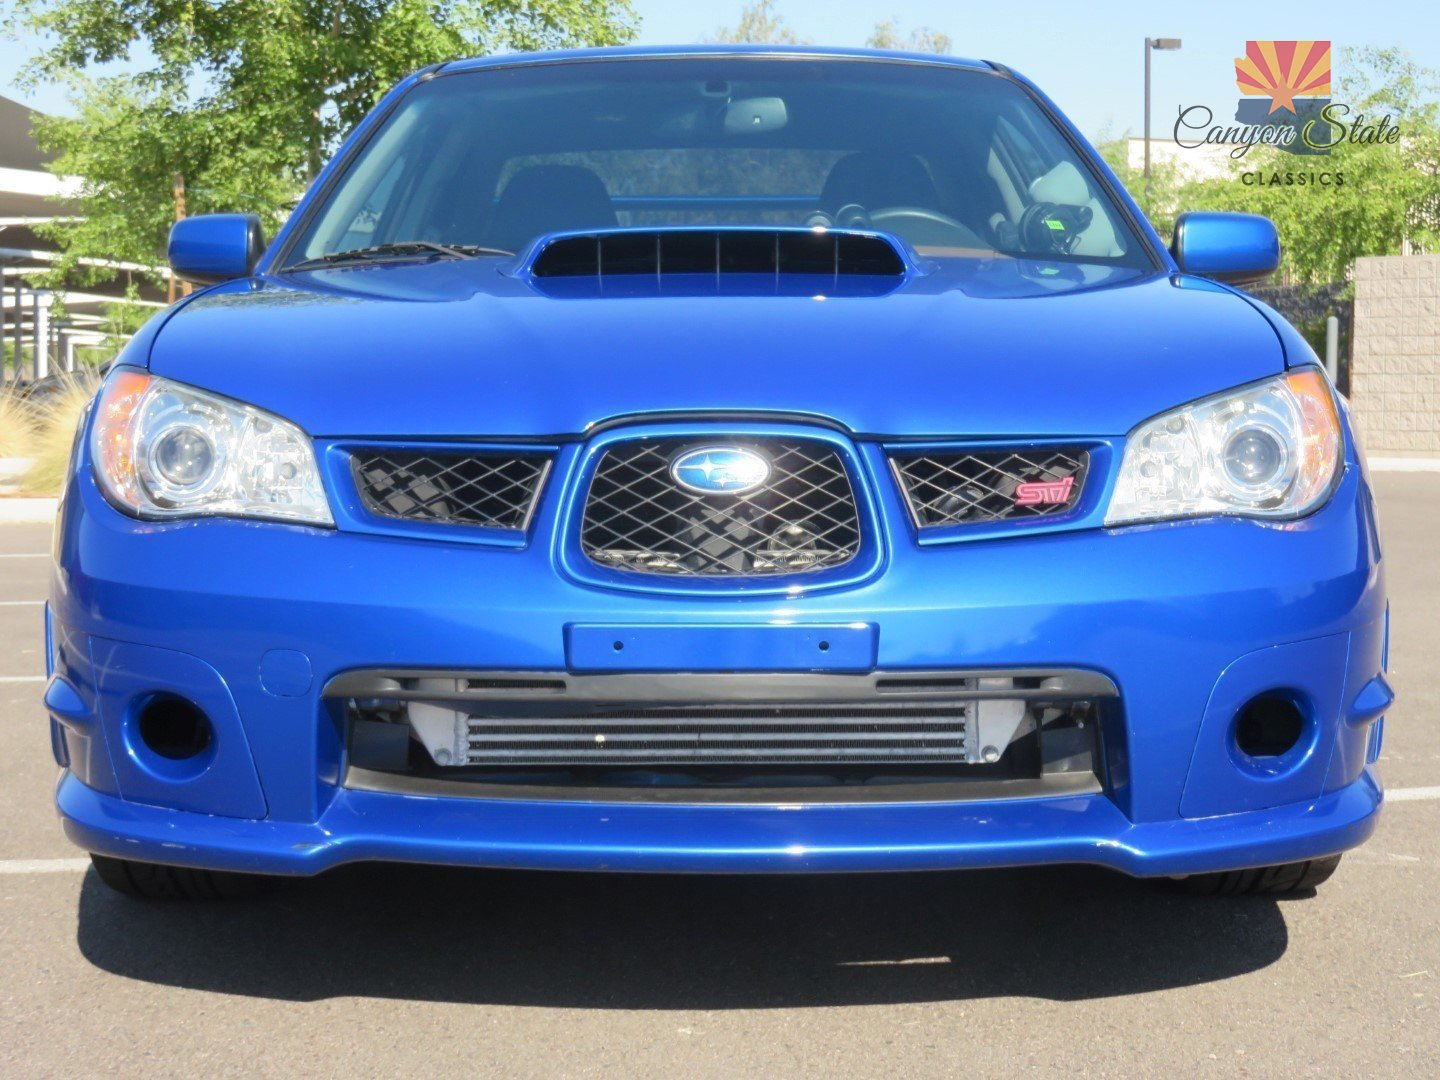 2007 subaru impreza wrx sti turbo for sale 69692 mcg. Black Bedroom Furniture Sets. Home Design Ideas